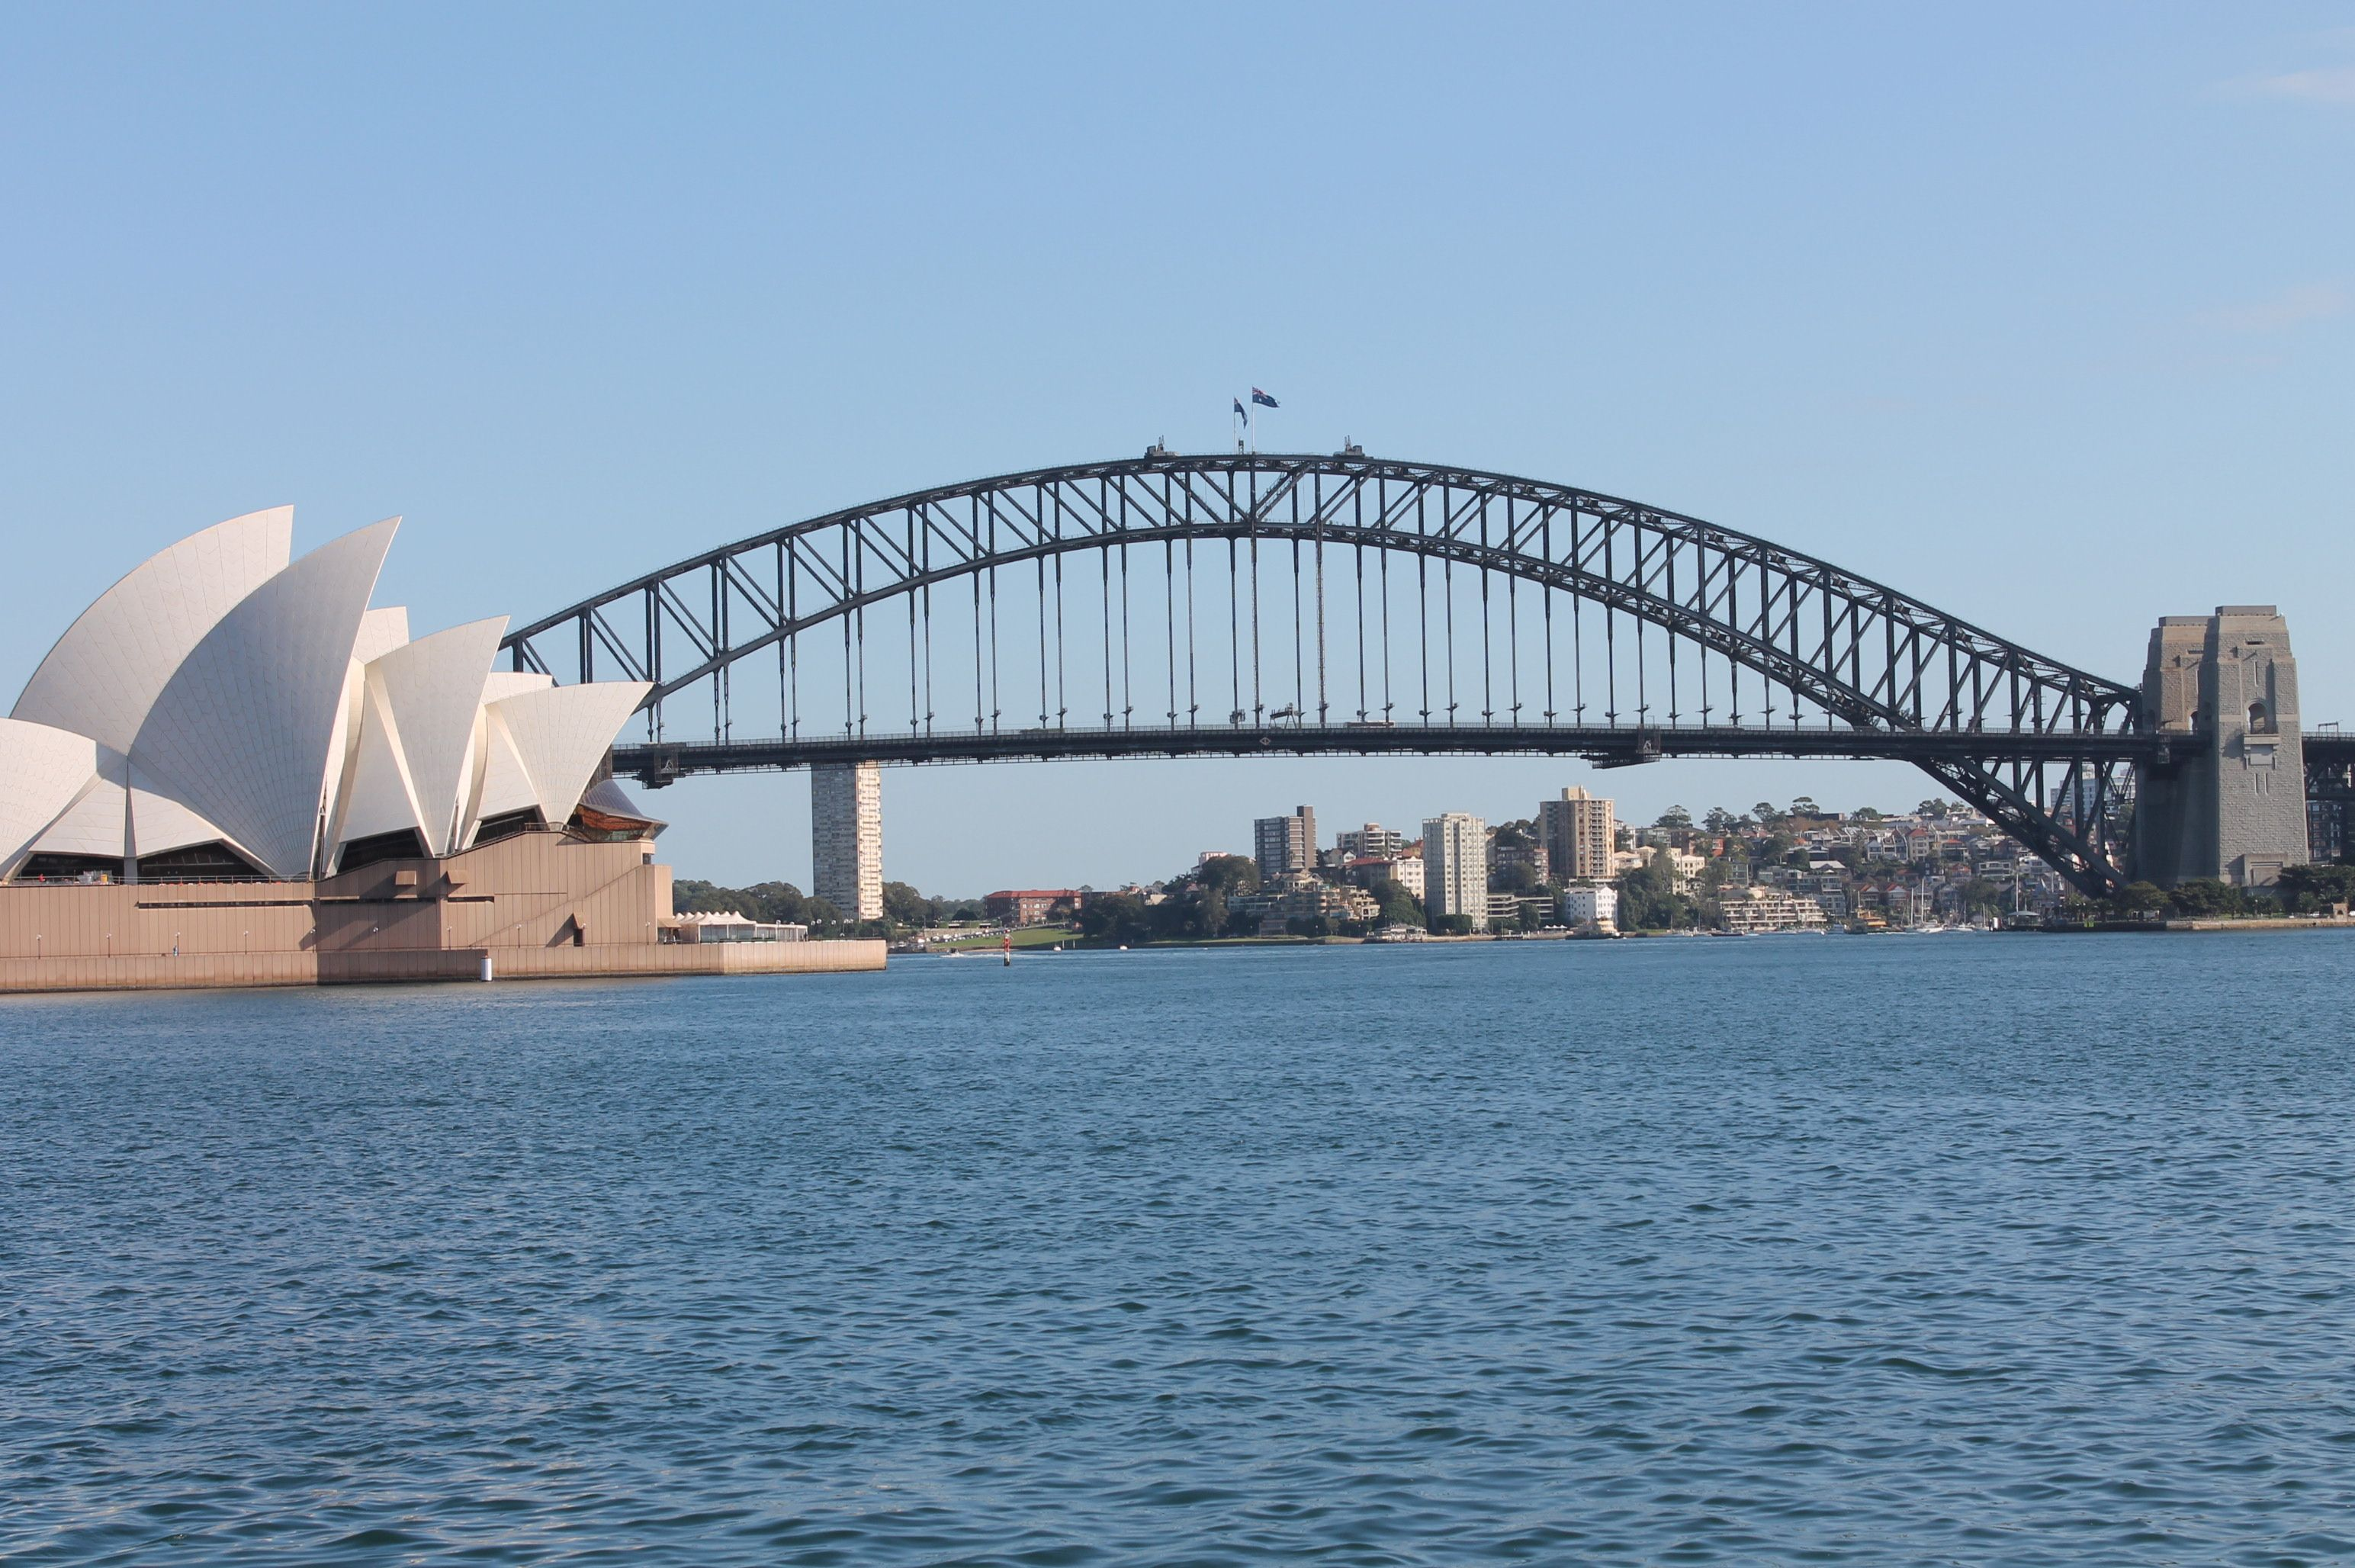 4911168cb16adbd58355bf7818be06ce - Get Images Of Sydney Harbour Bridge And Opera House  Background